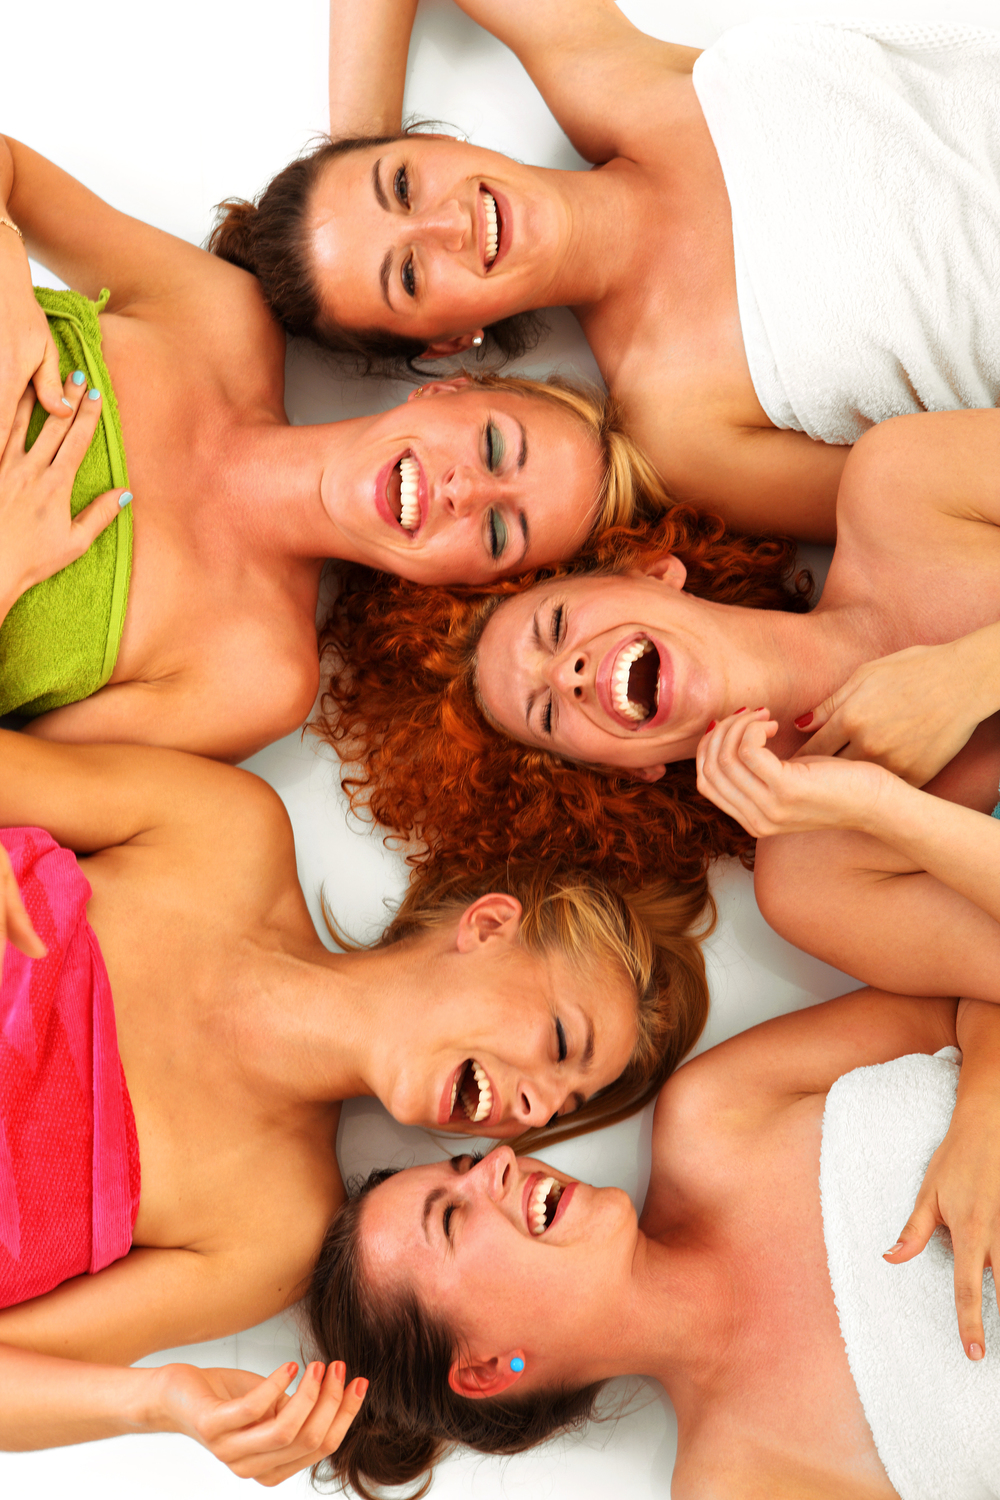 stock-photo-a-picture-of-five-girl-friends-having-fun-in-spa-over-white-background-119090353.jpg